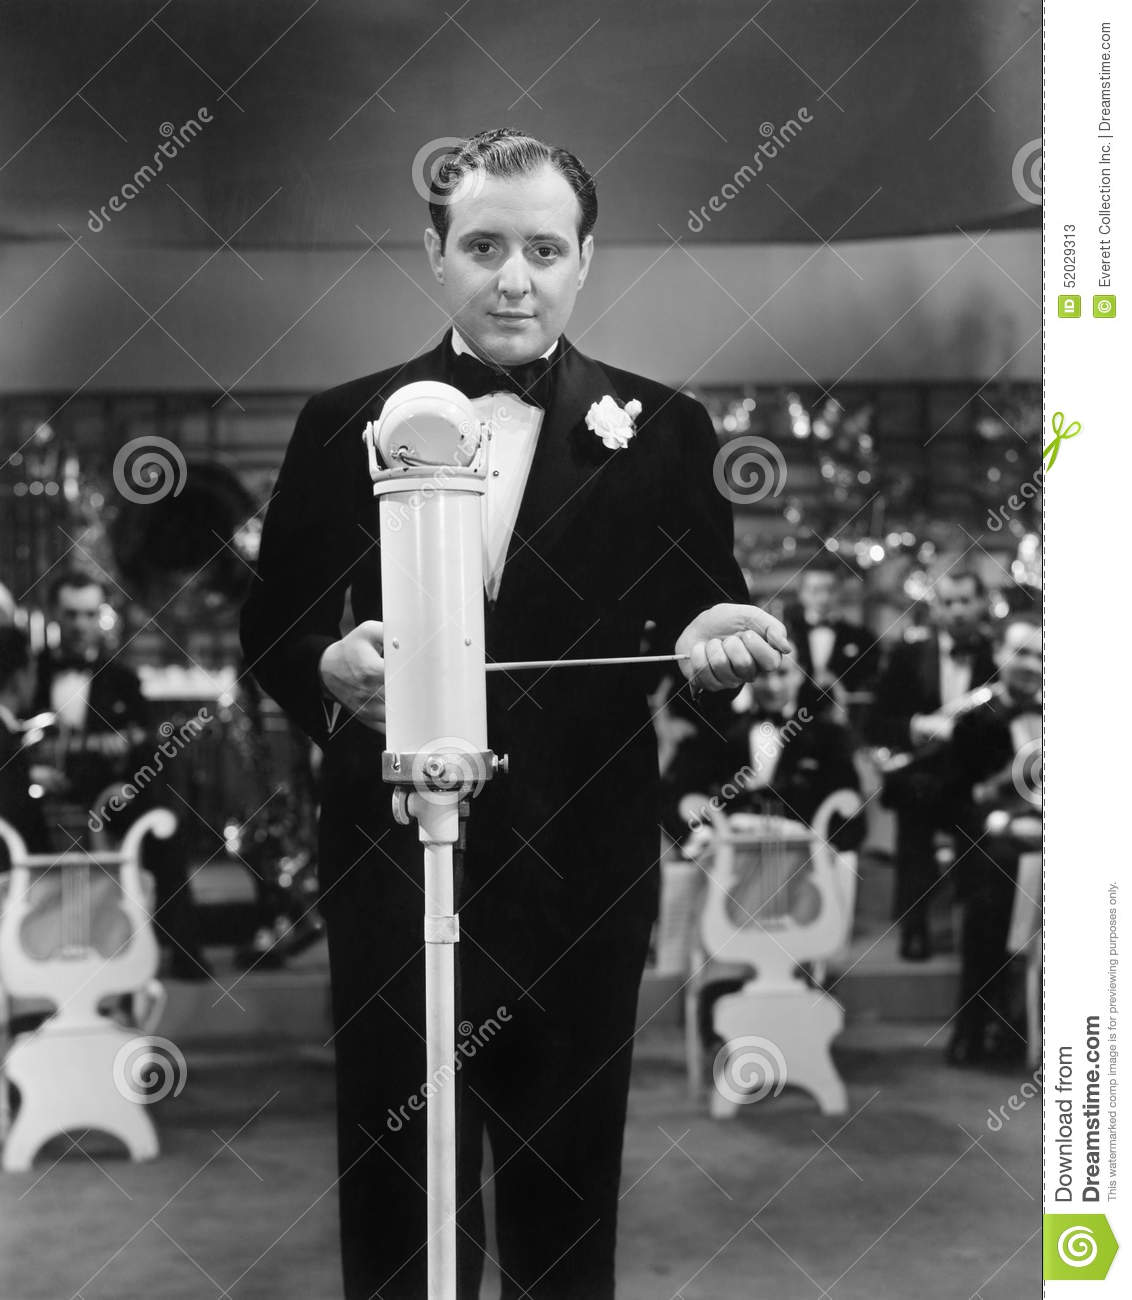 Conductor standing in front of his orchestra with a baton